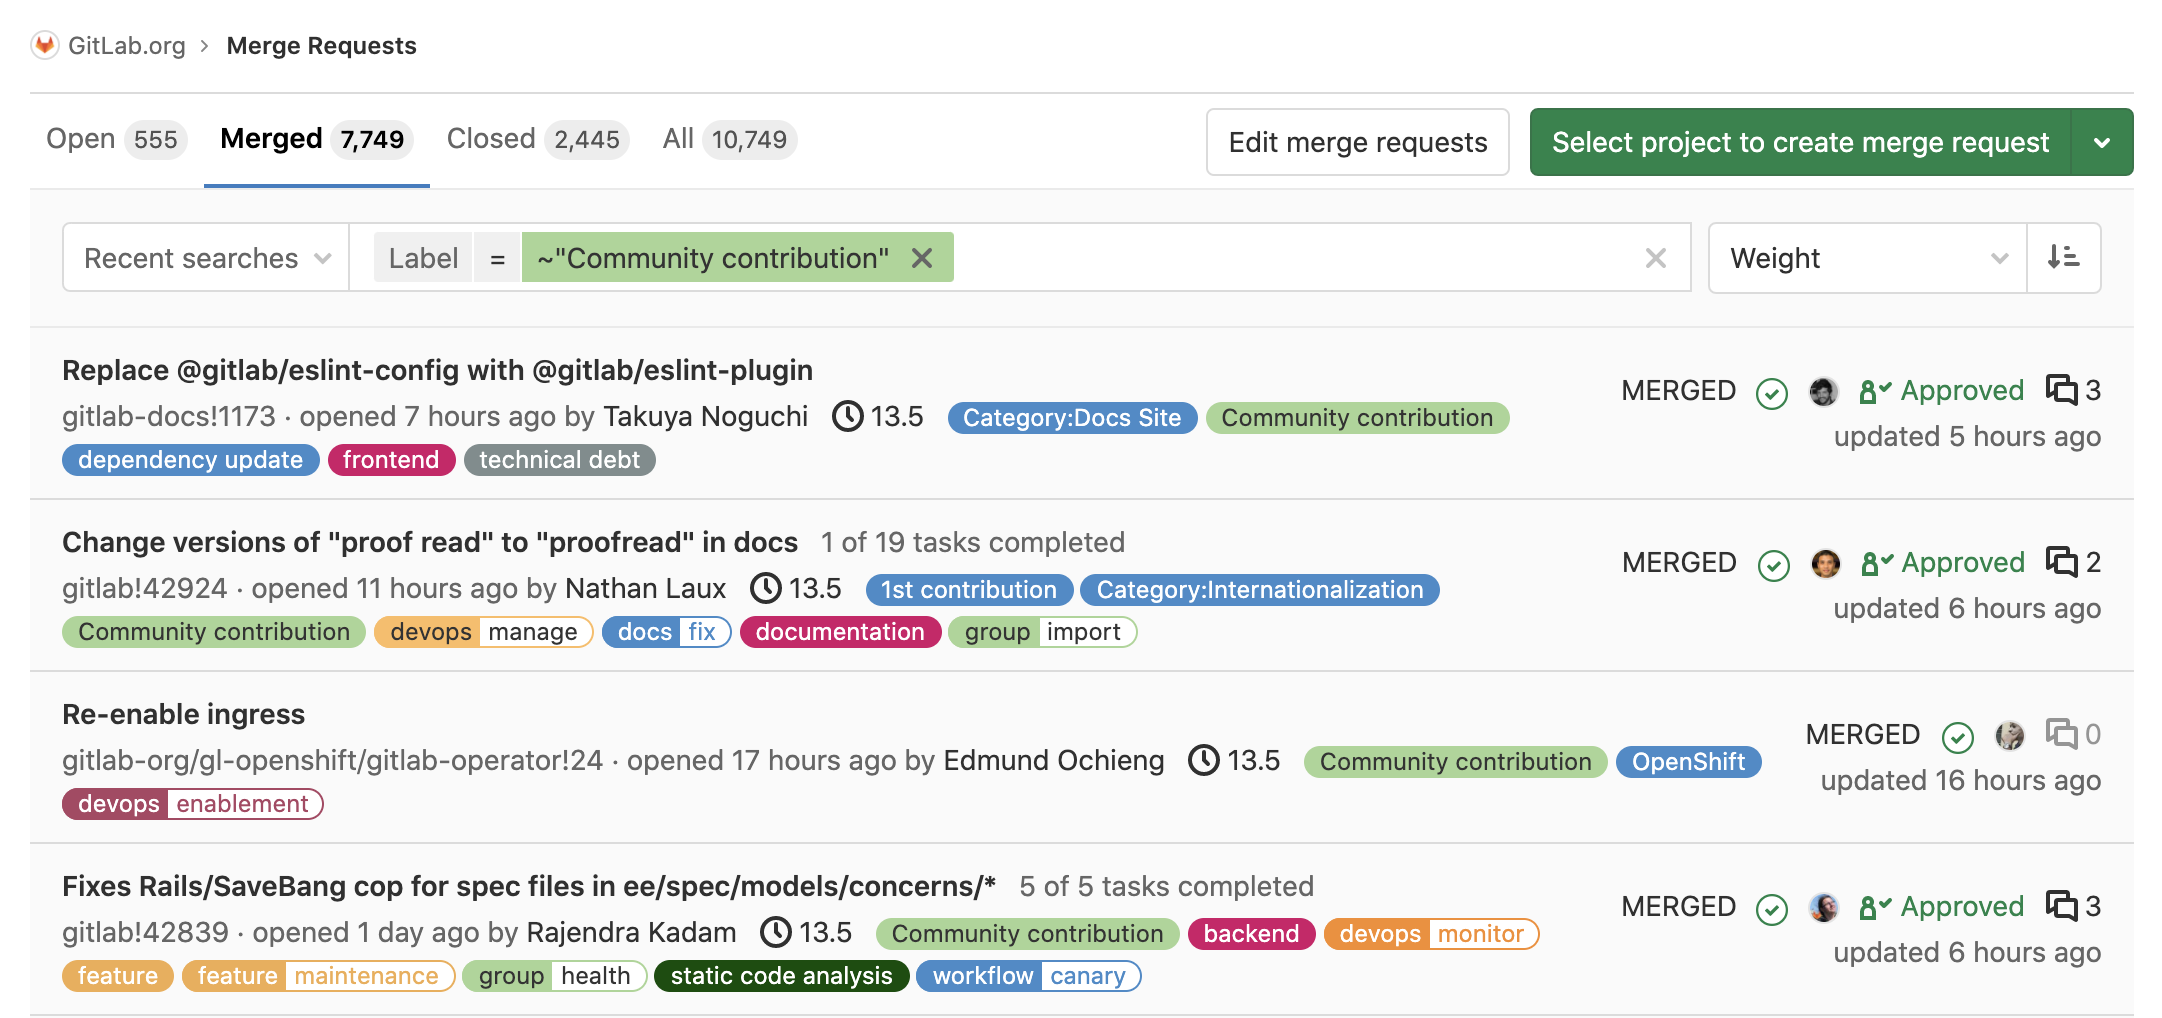 Screenshot showing more than 7,700 merged community MRs